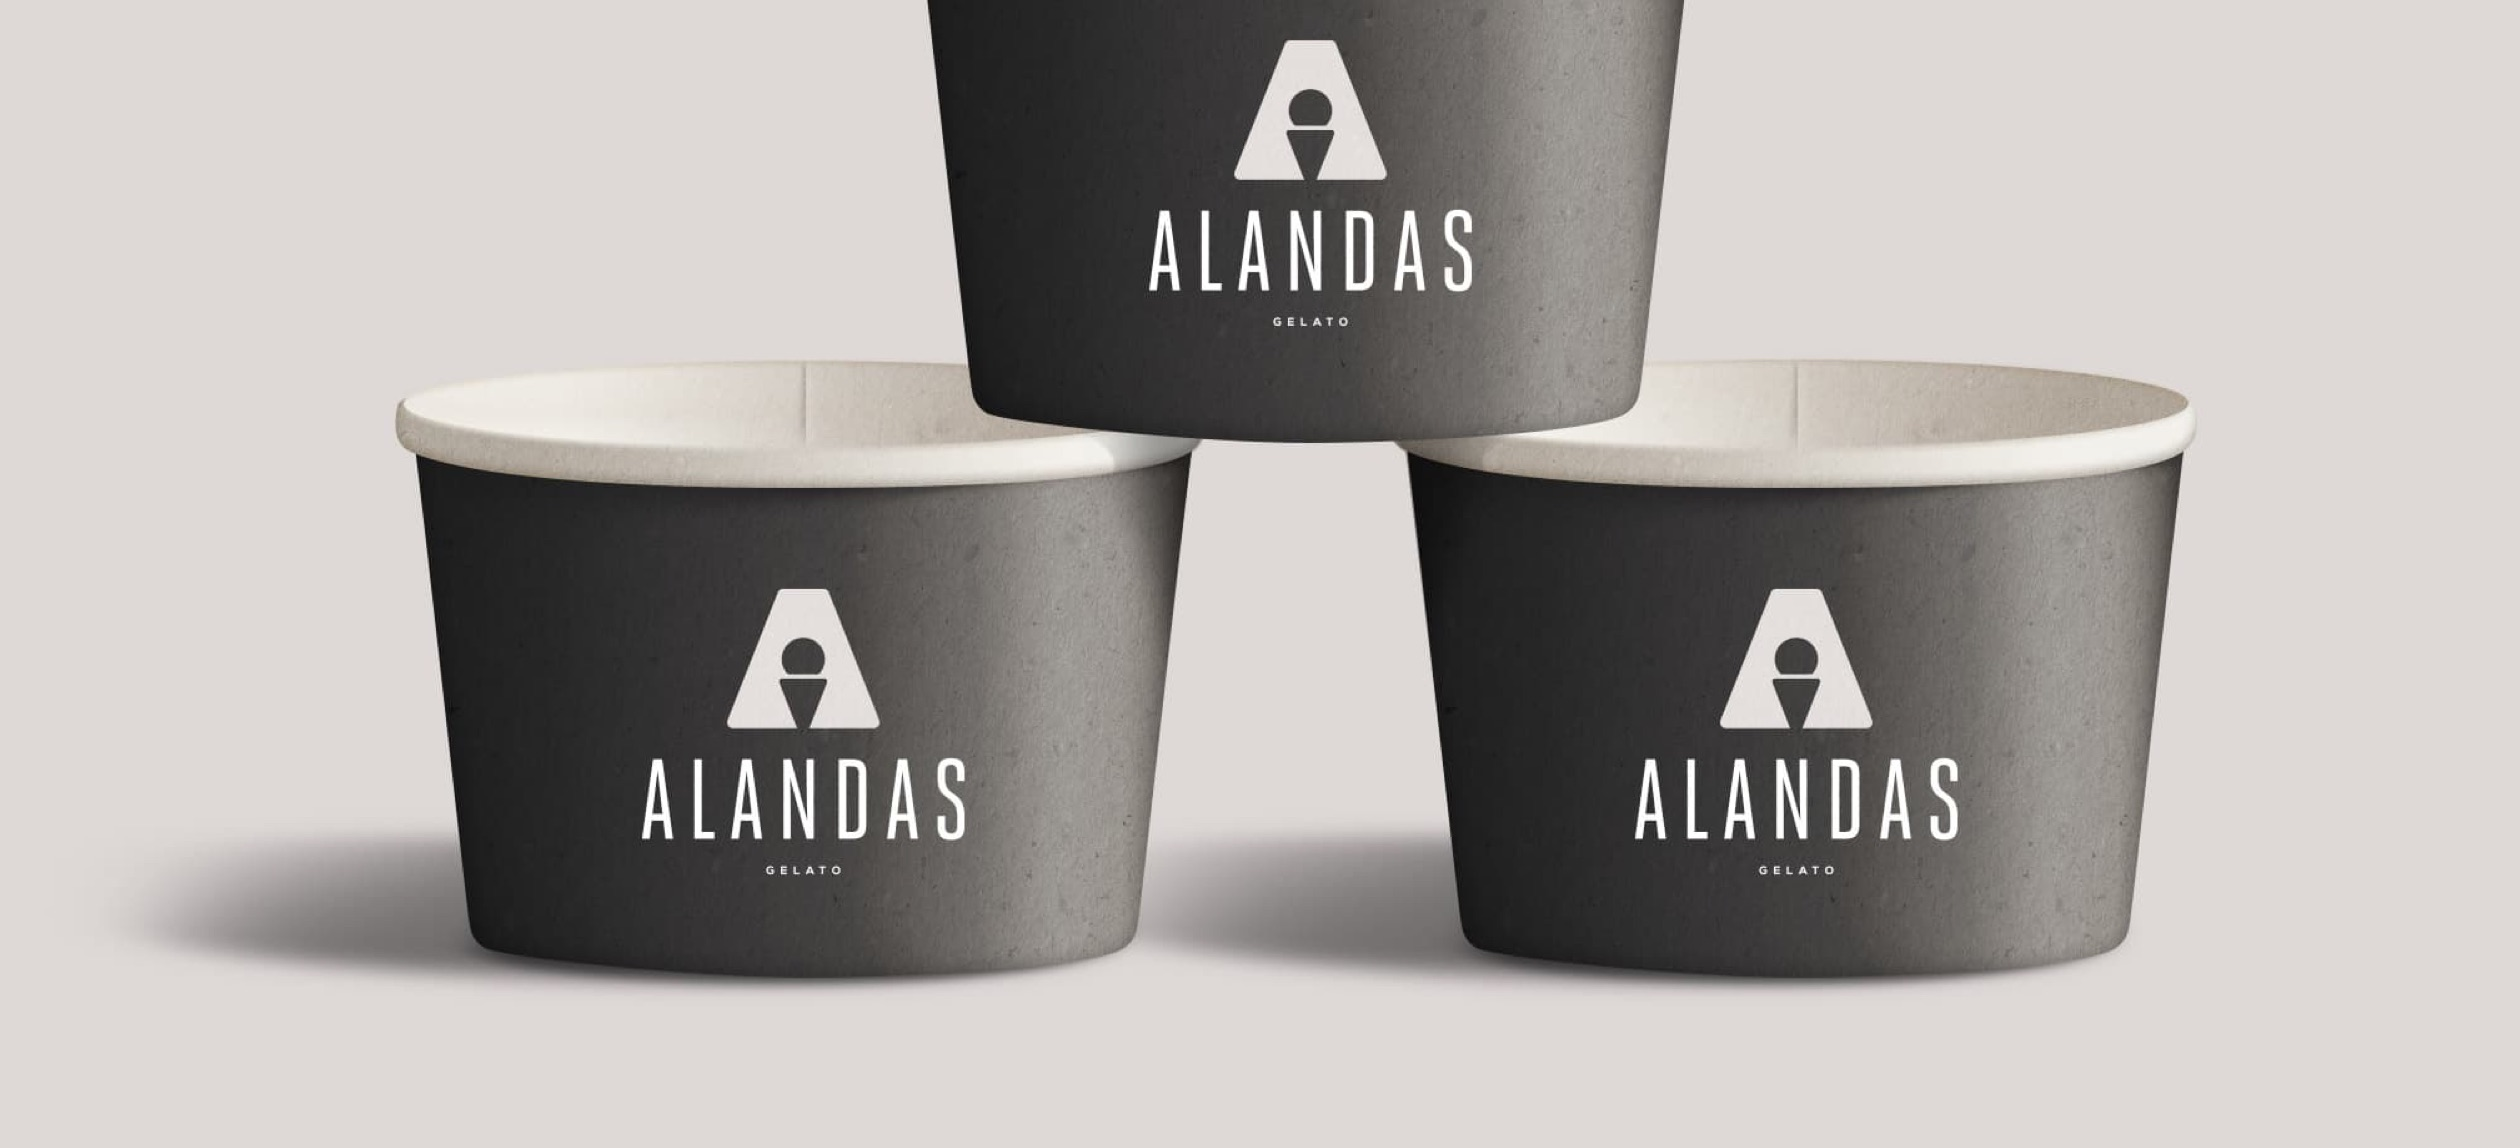 Alandas Eat Marketing Case Study